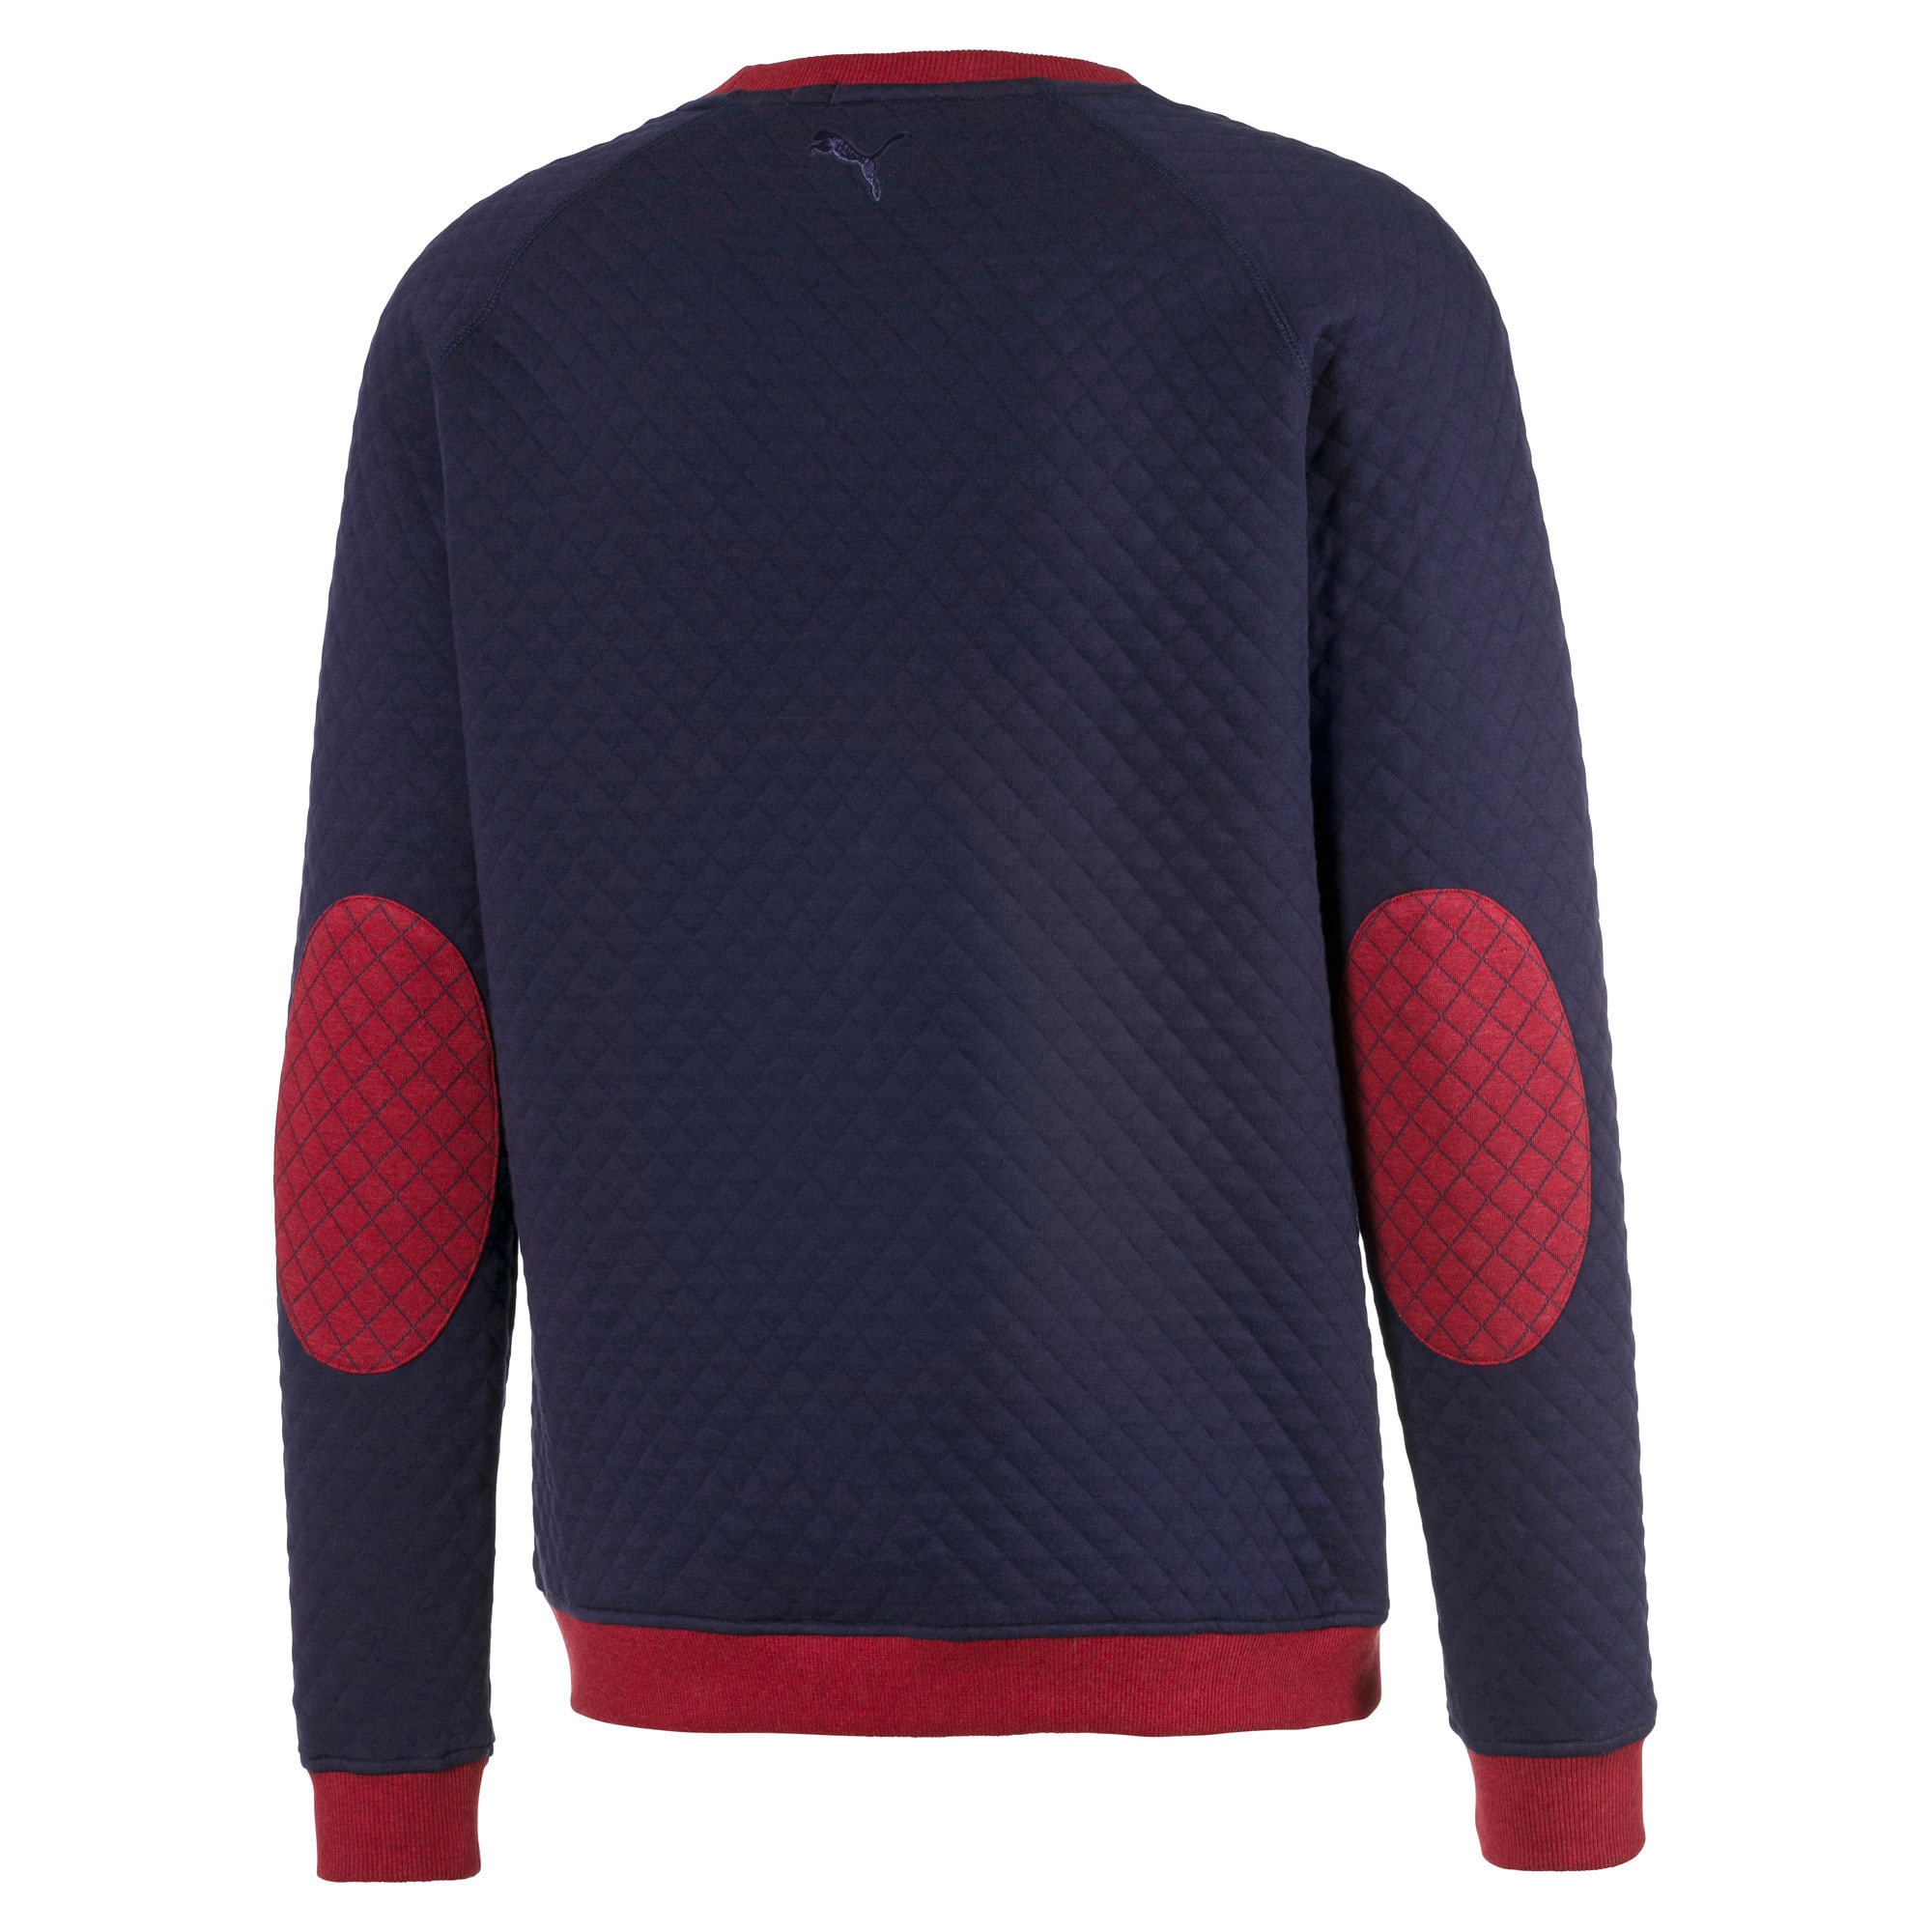 Thumbnail 6 of Gestepptes Herren Golf Sweatshirt, Rhubarb Heather, medium